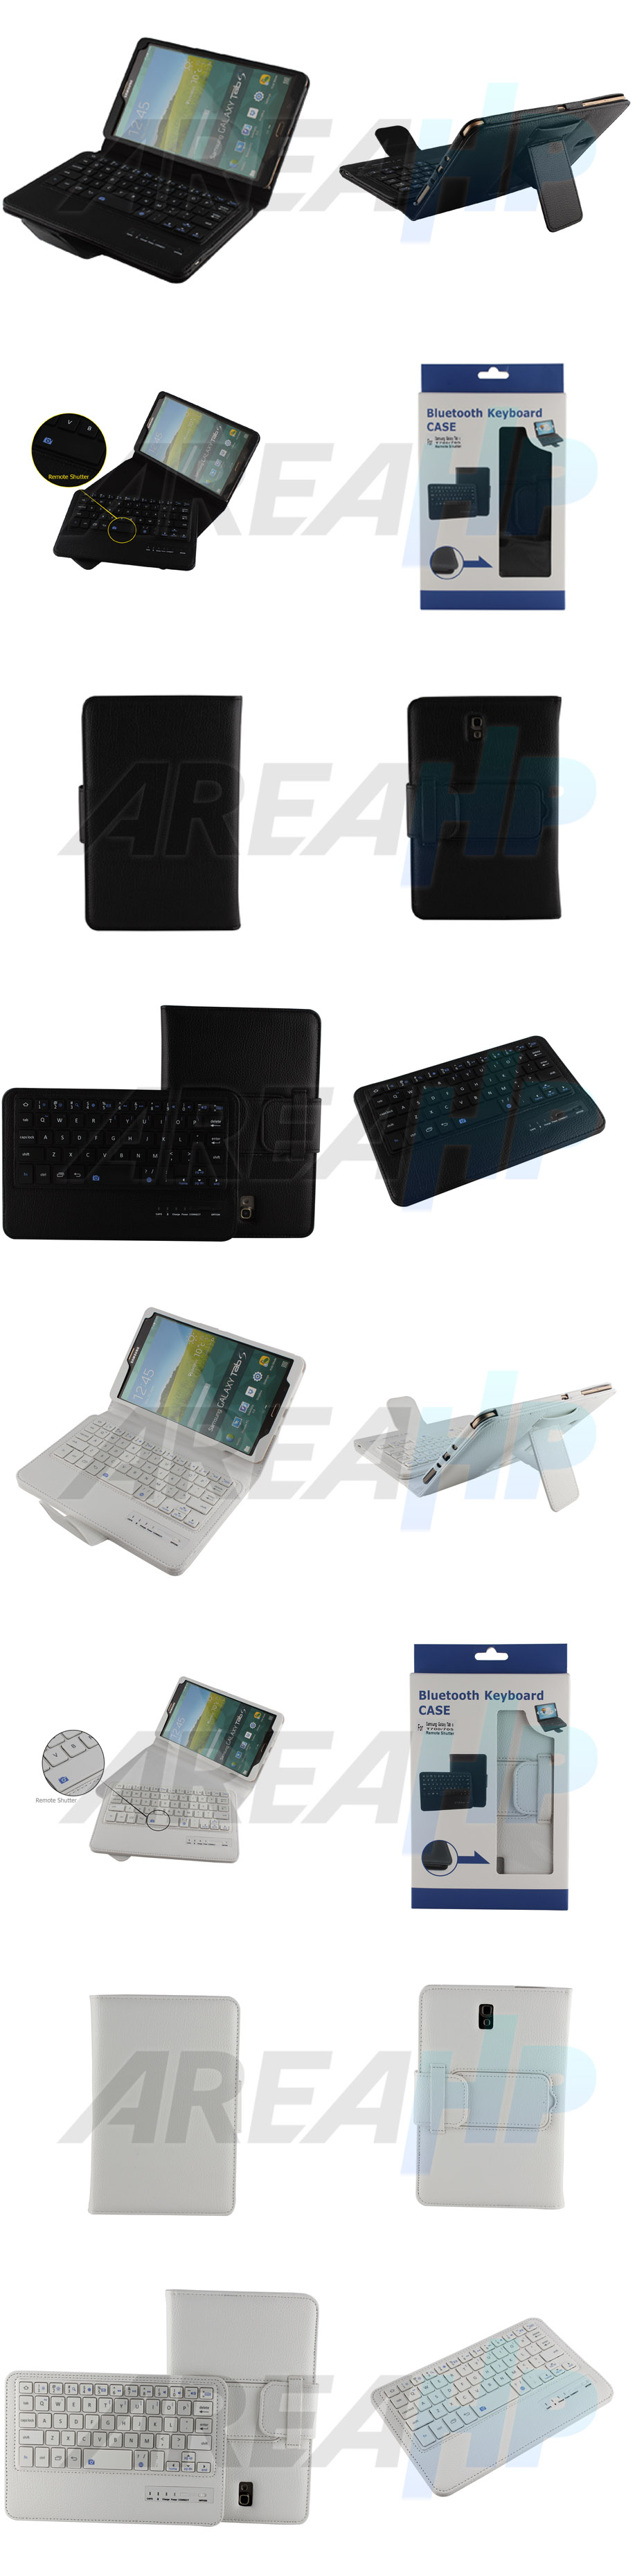 Removable Keyboard Leather Case for Samsung Galaxy Tab S 8.4 Overview